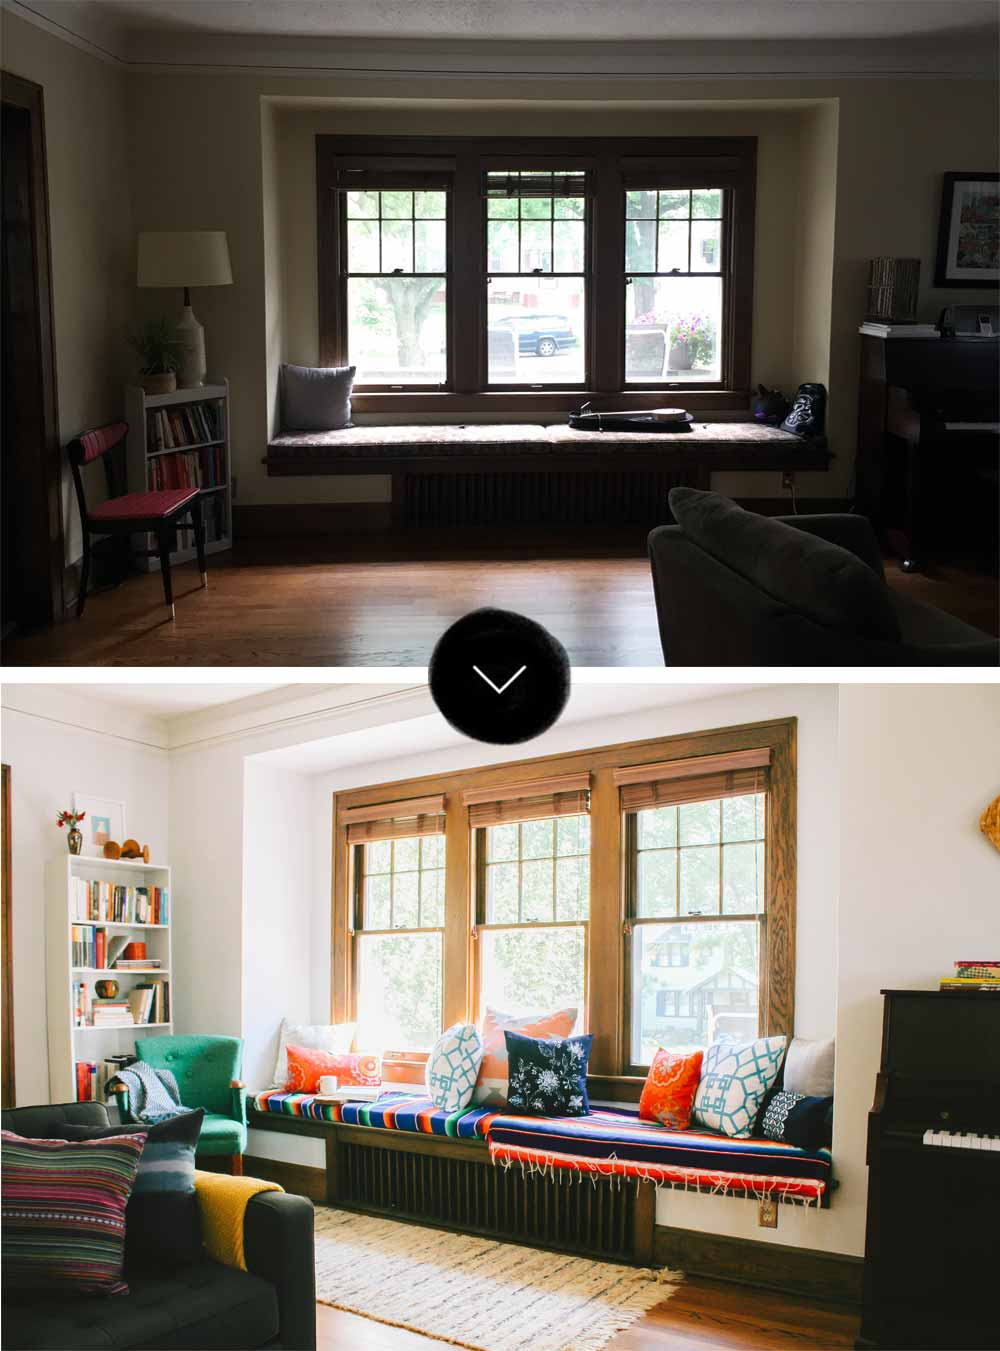 Before & After: A Grown-Up Bohemian Makeover, on Design*Sponge